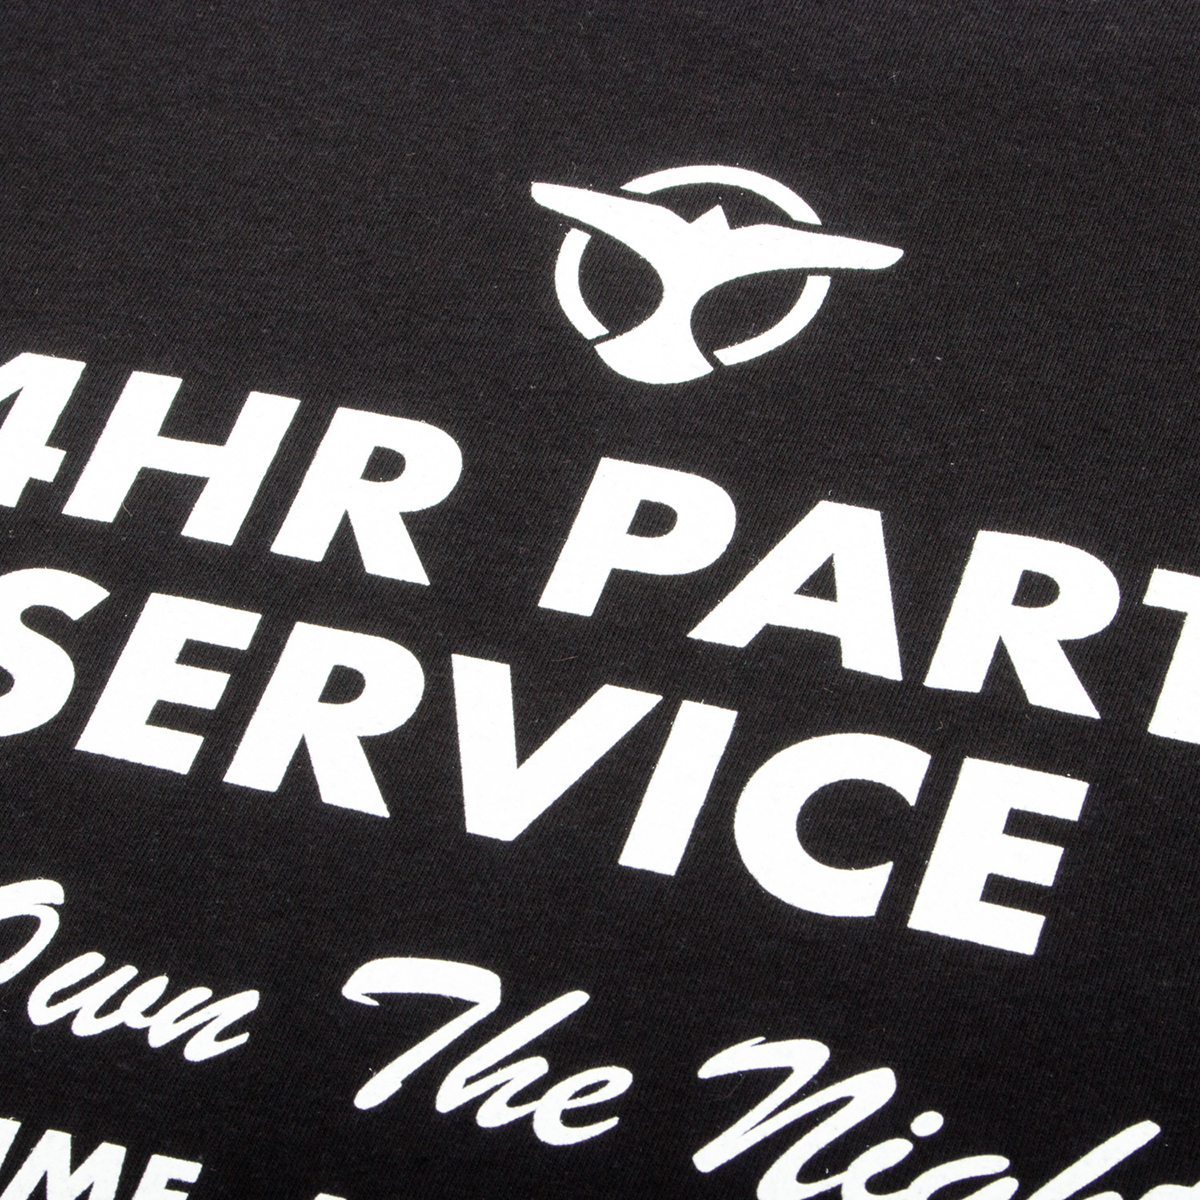 '24 HR PARTY' T-Shirt